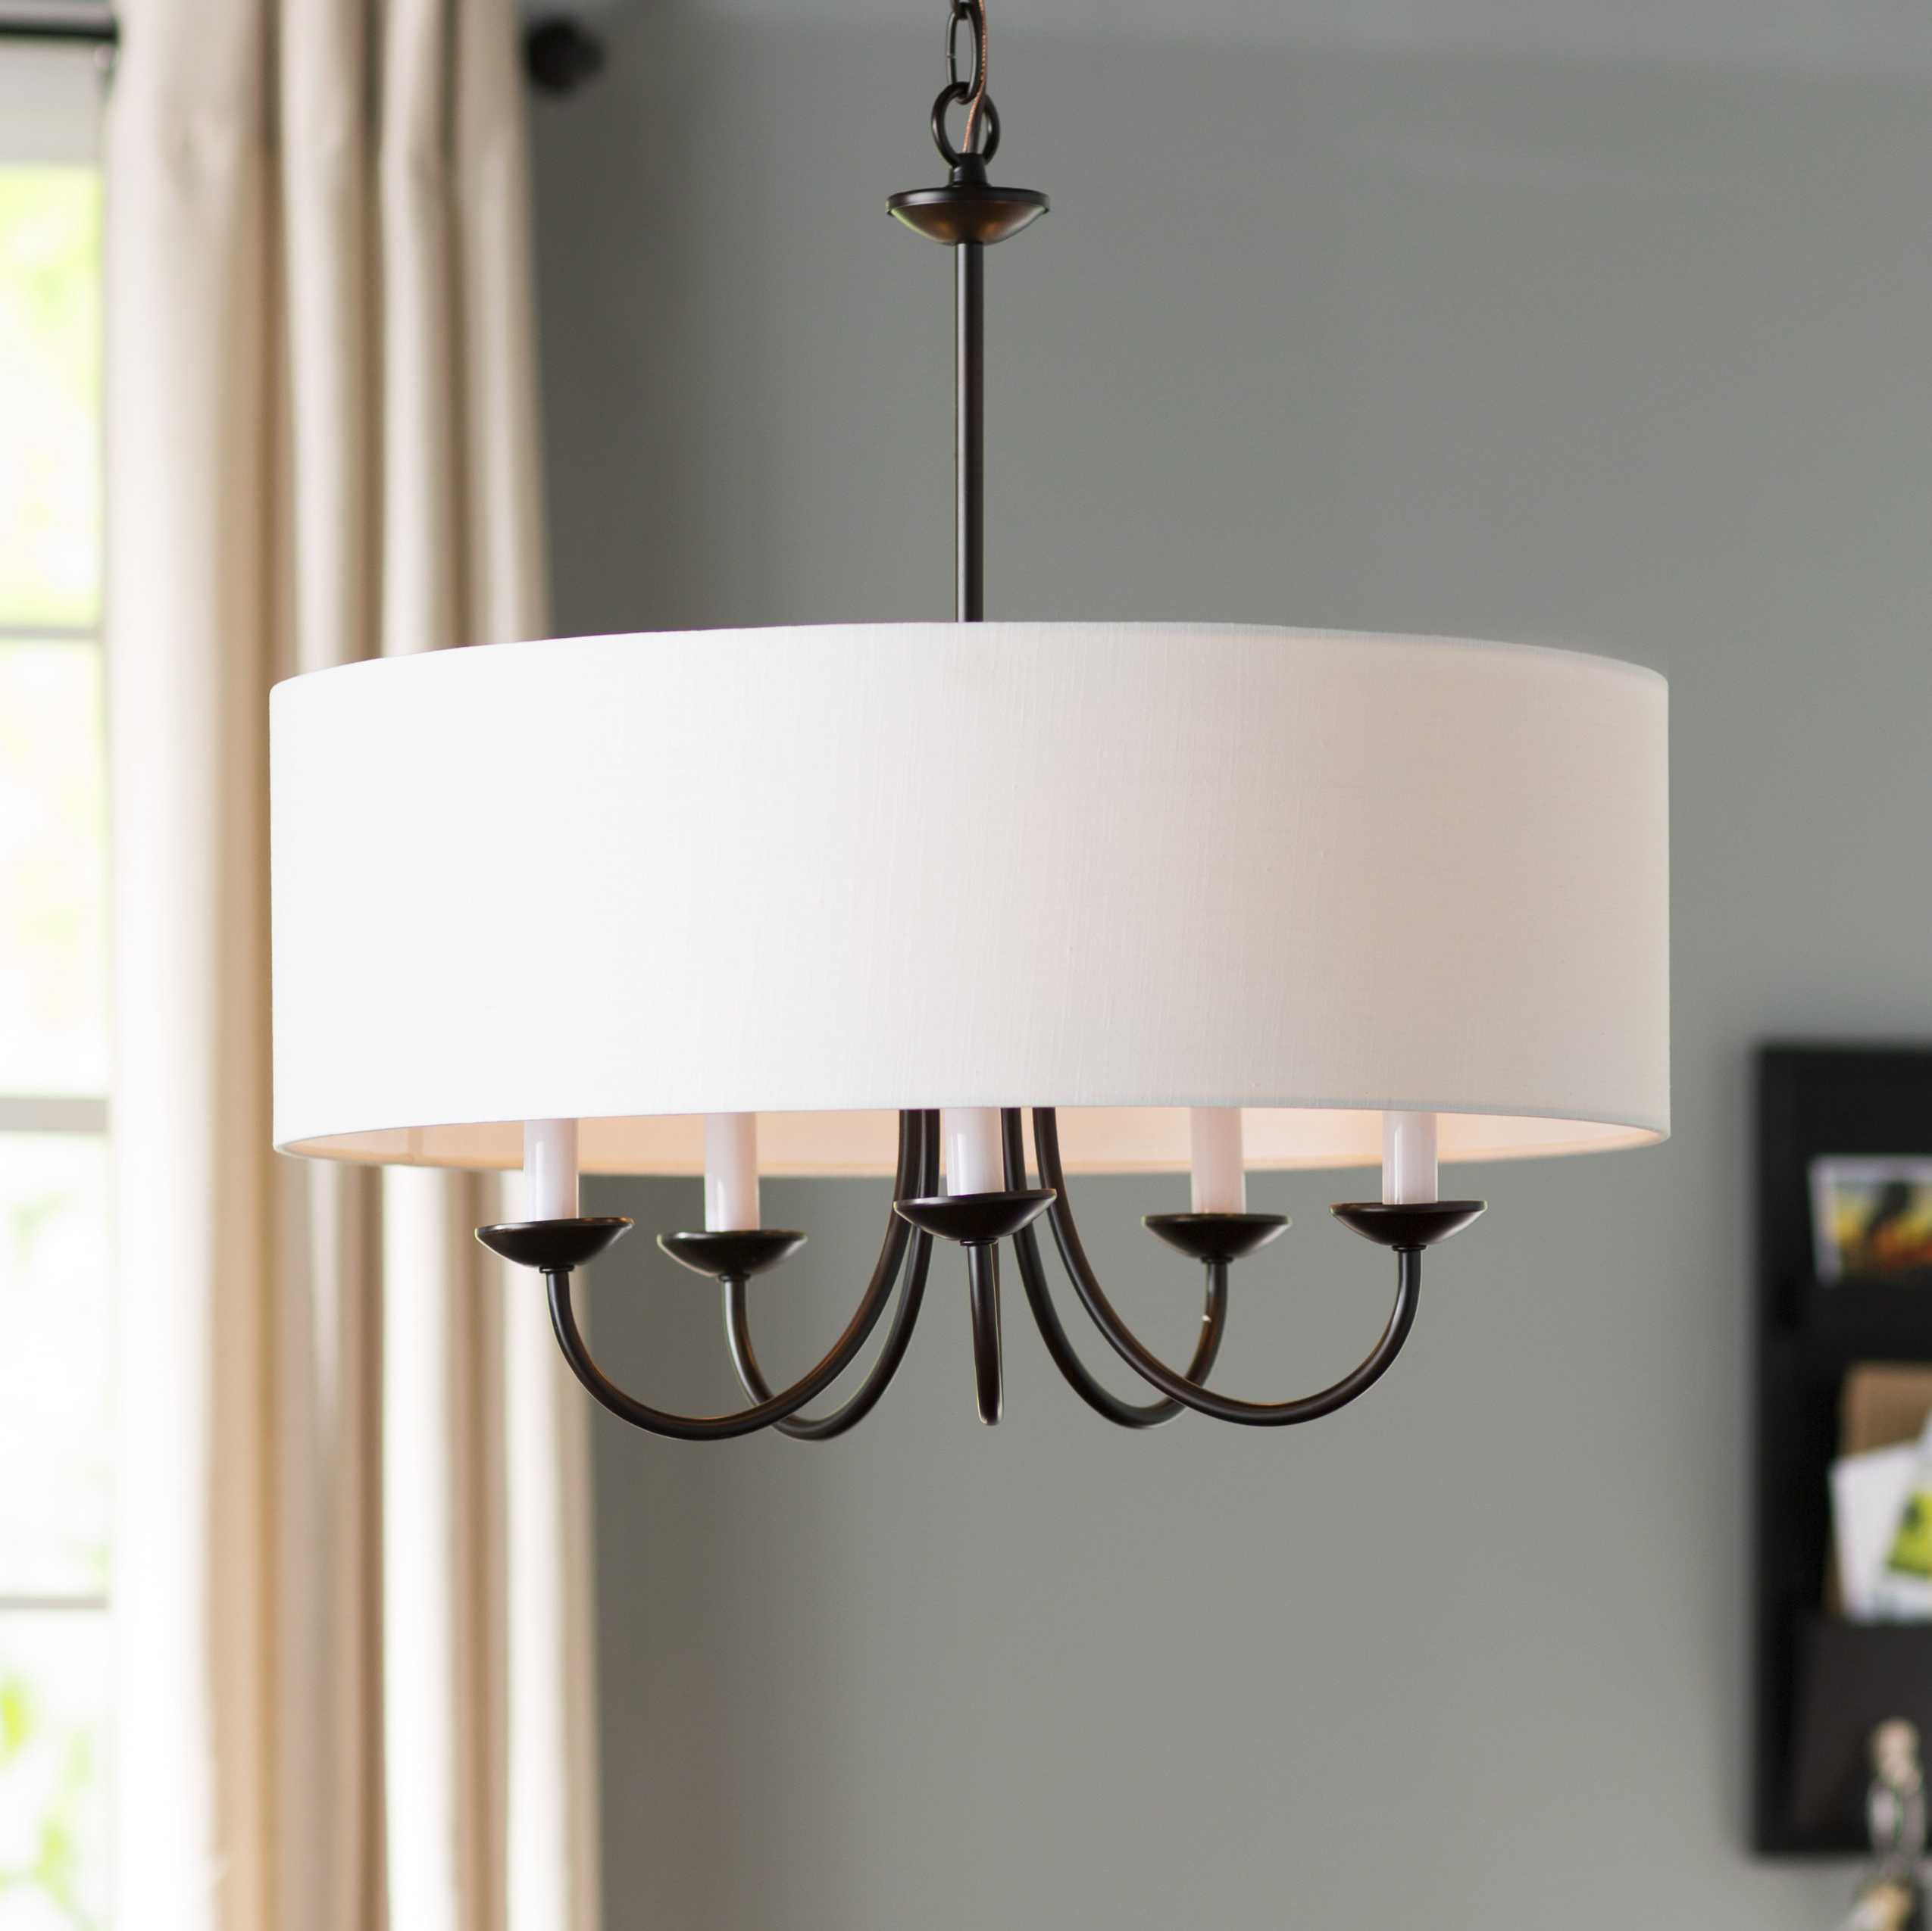 Breithaup 7 Light Drum Chandeliers Pertaining To Most Up To Date Round Chandelier (View 5 of 20)